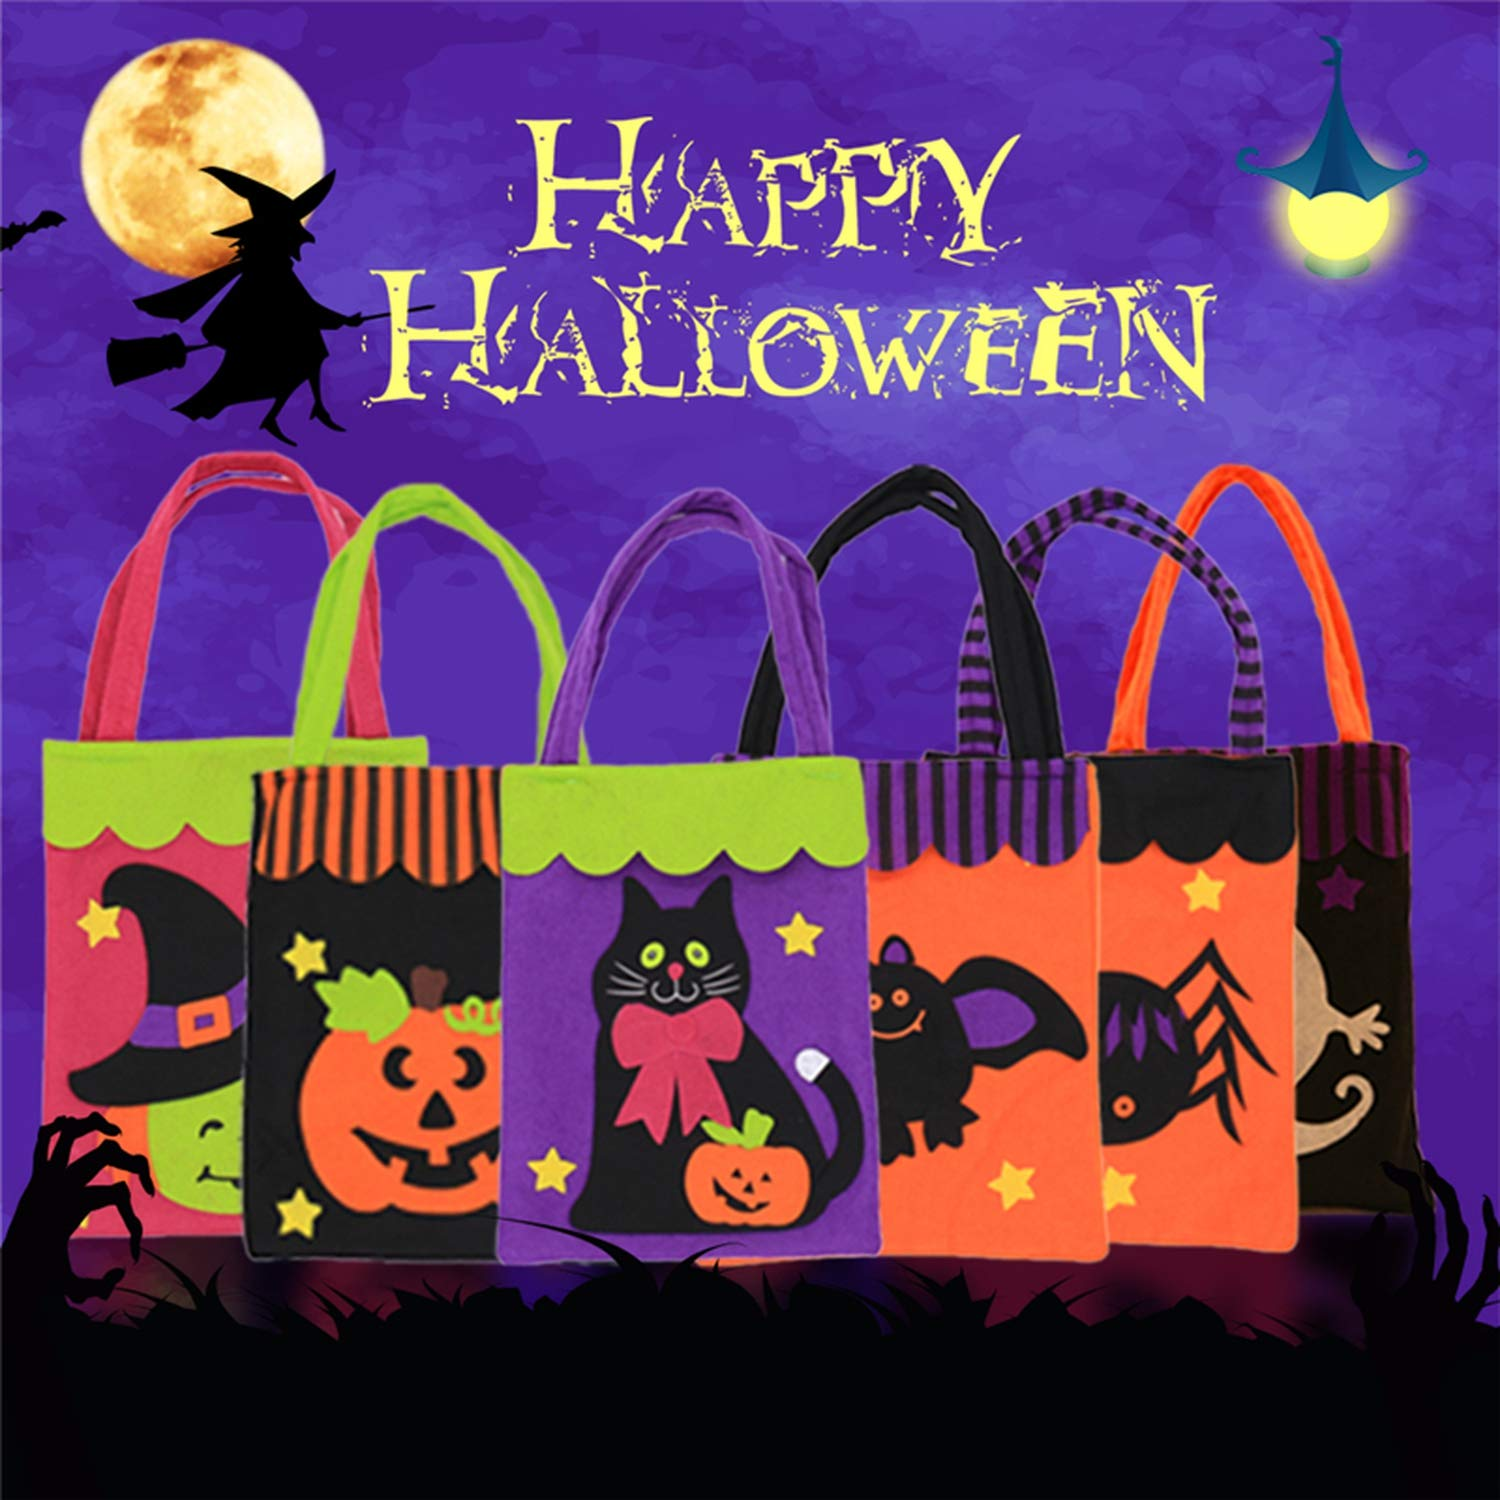 Halloween Candy Bag Gift Bags Pumpkin Trick Or Treat Bags Sacks Gift for Kids Event Party,D by Acereima (Image #2)